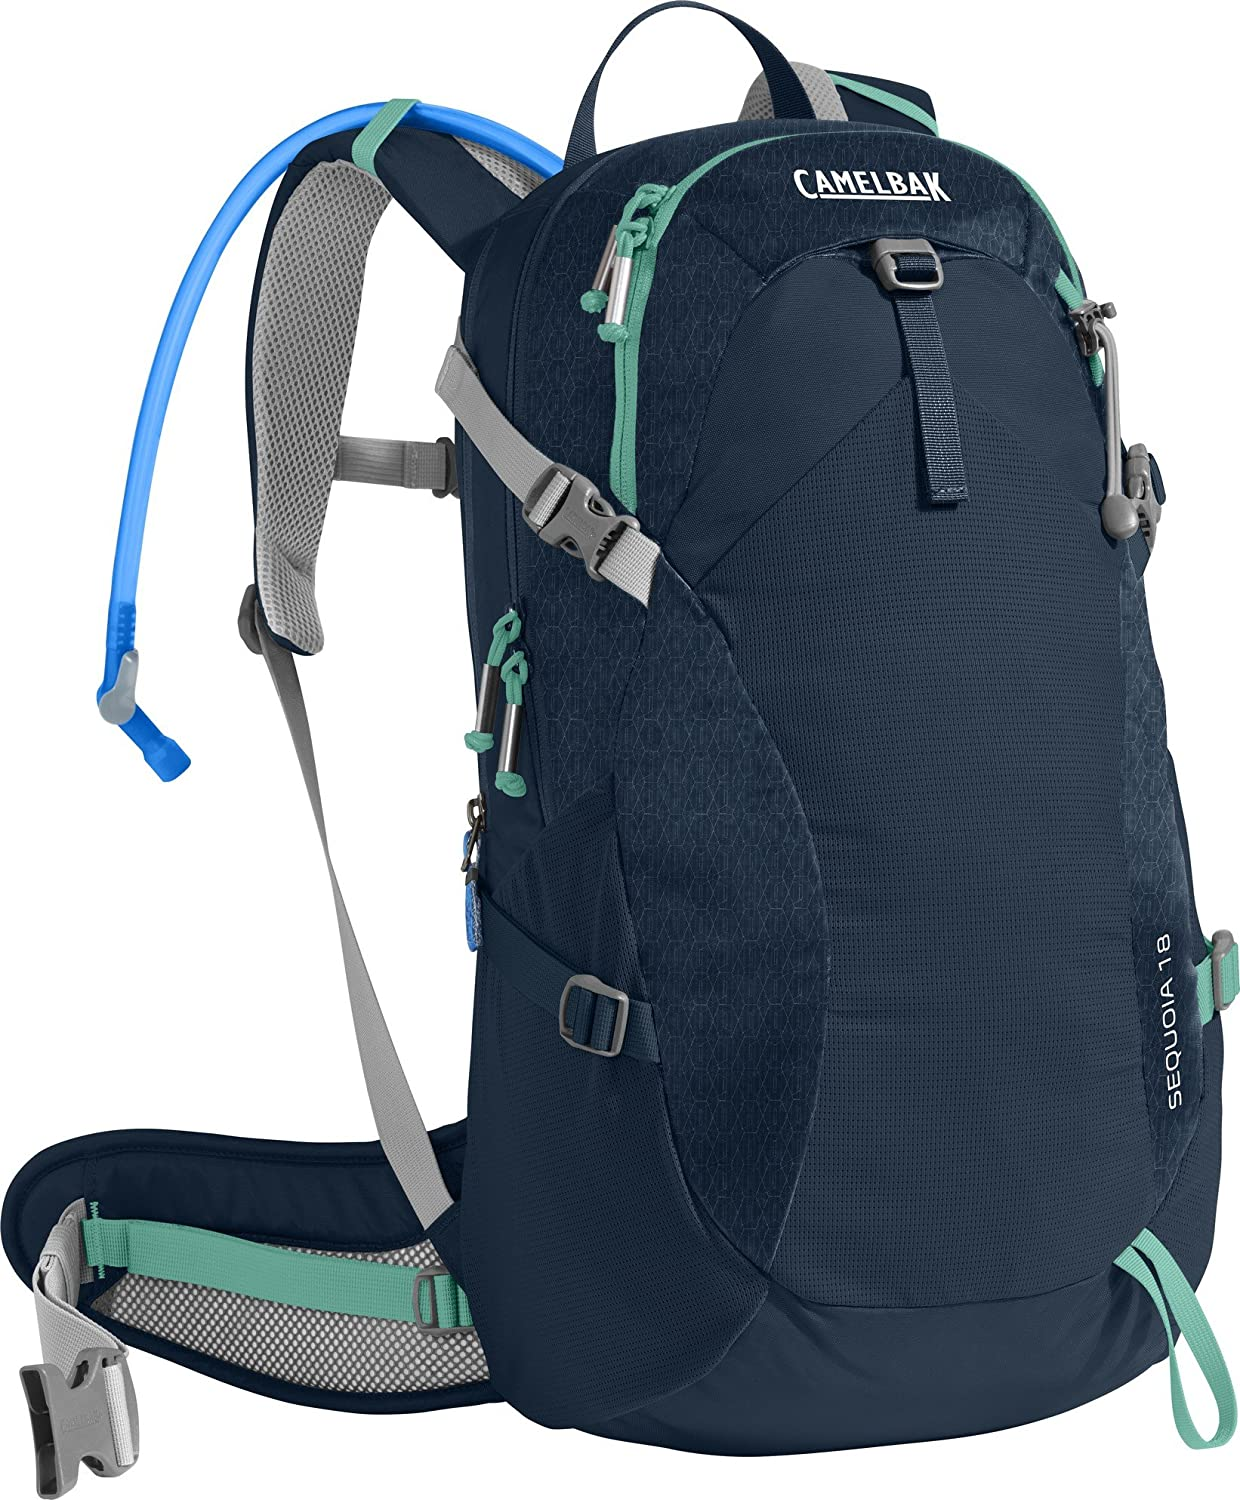 CamelBak Women s Sequoia 18 Hydration Pack Discontinued Styles